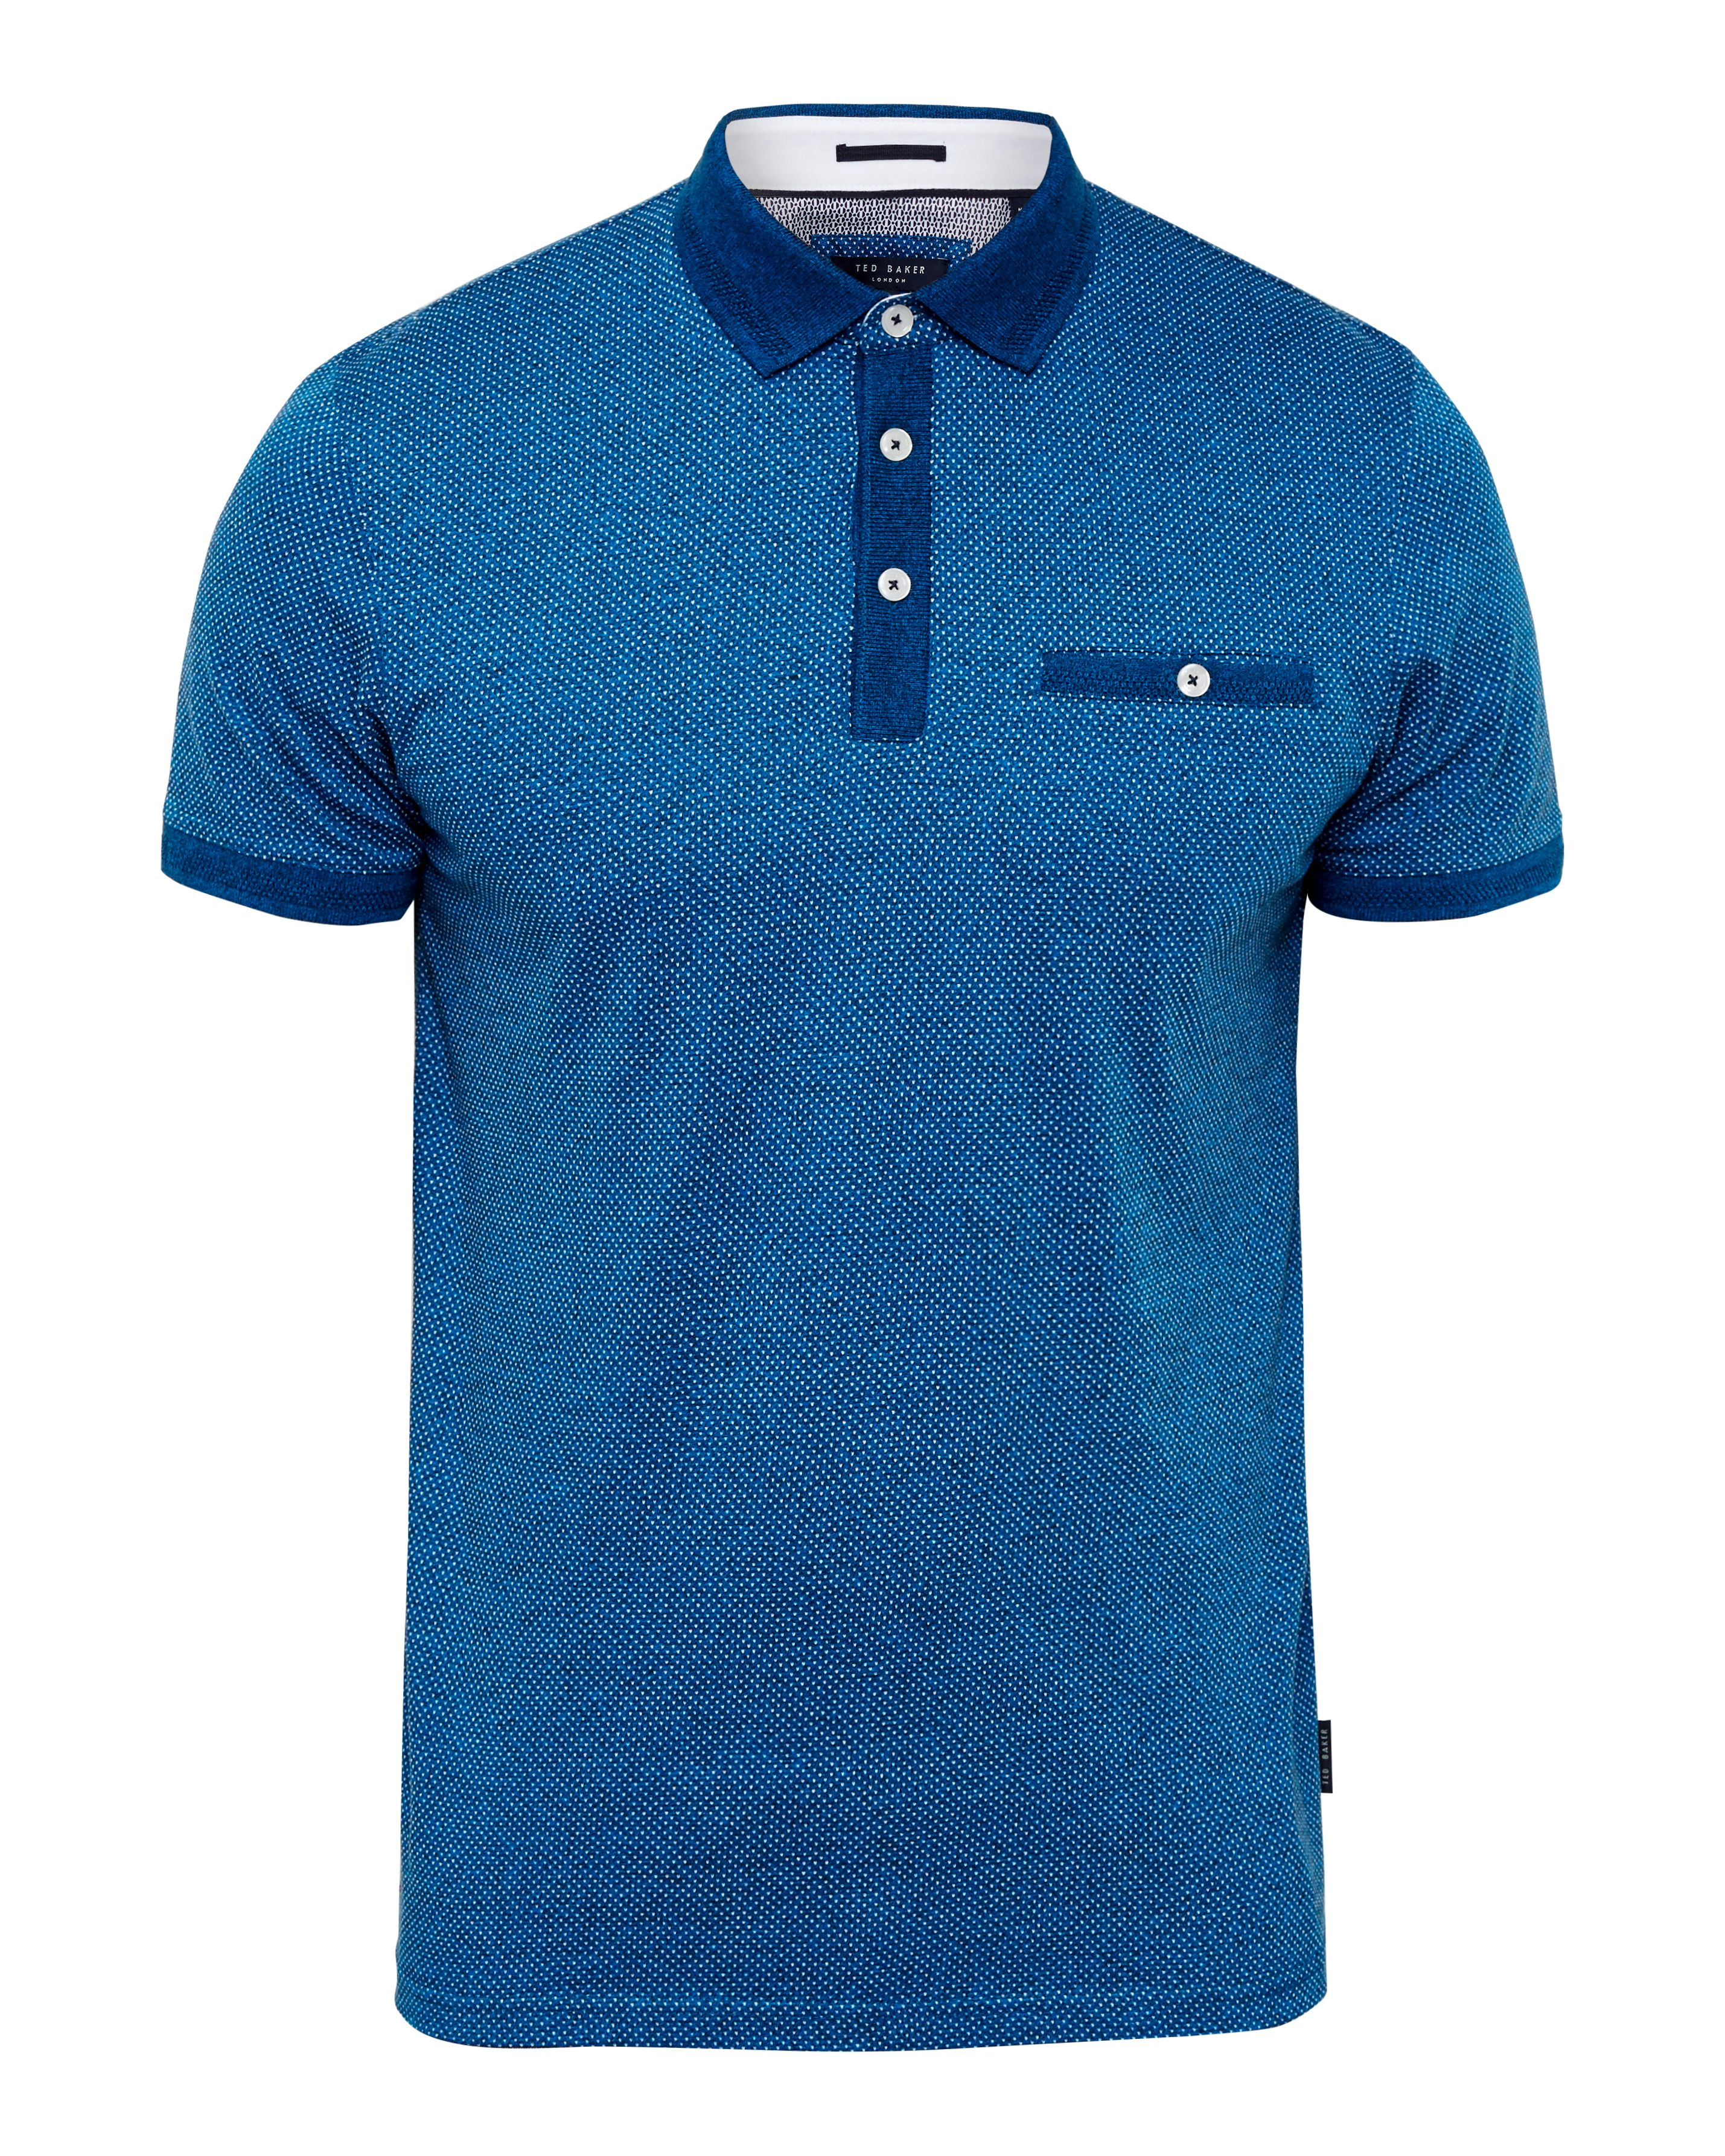 Mens Ted Baker Otto Ted Baker menswear collection Teal